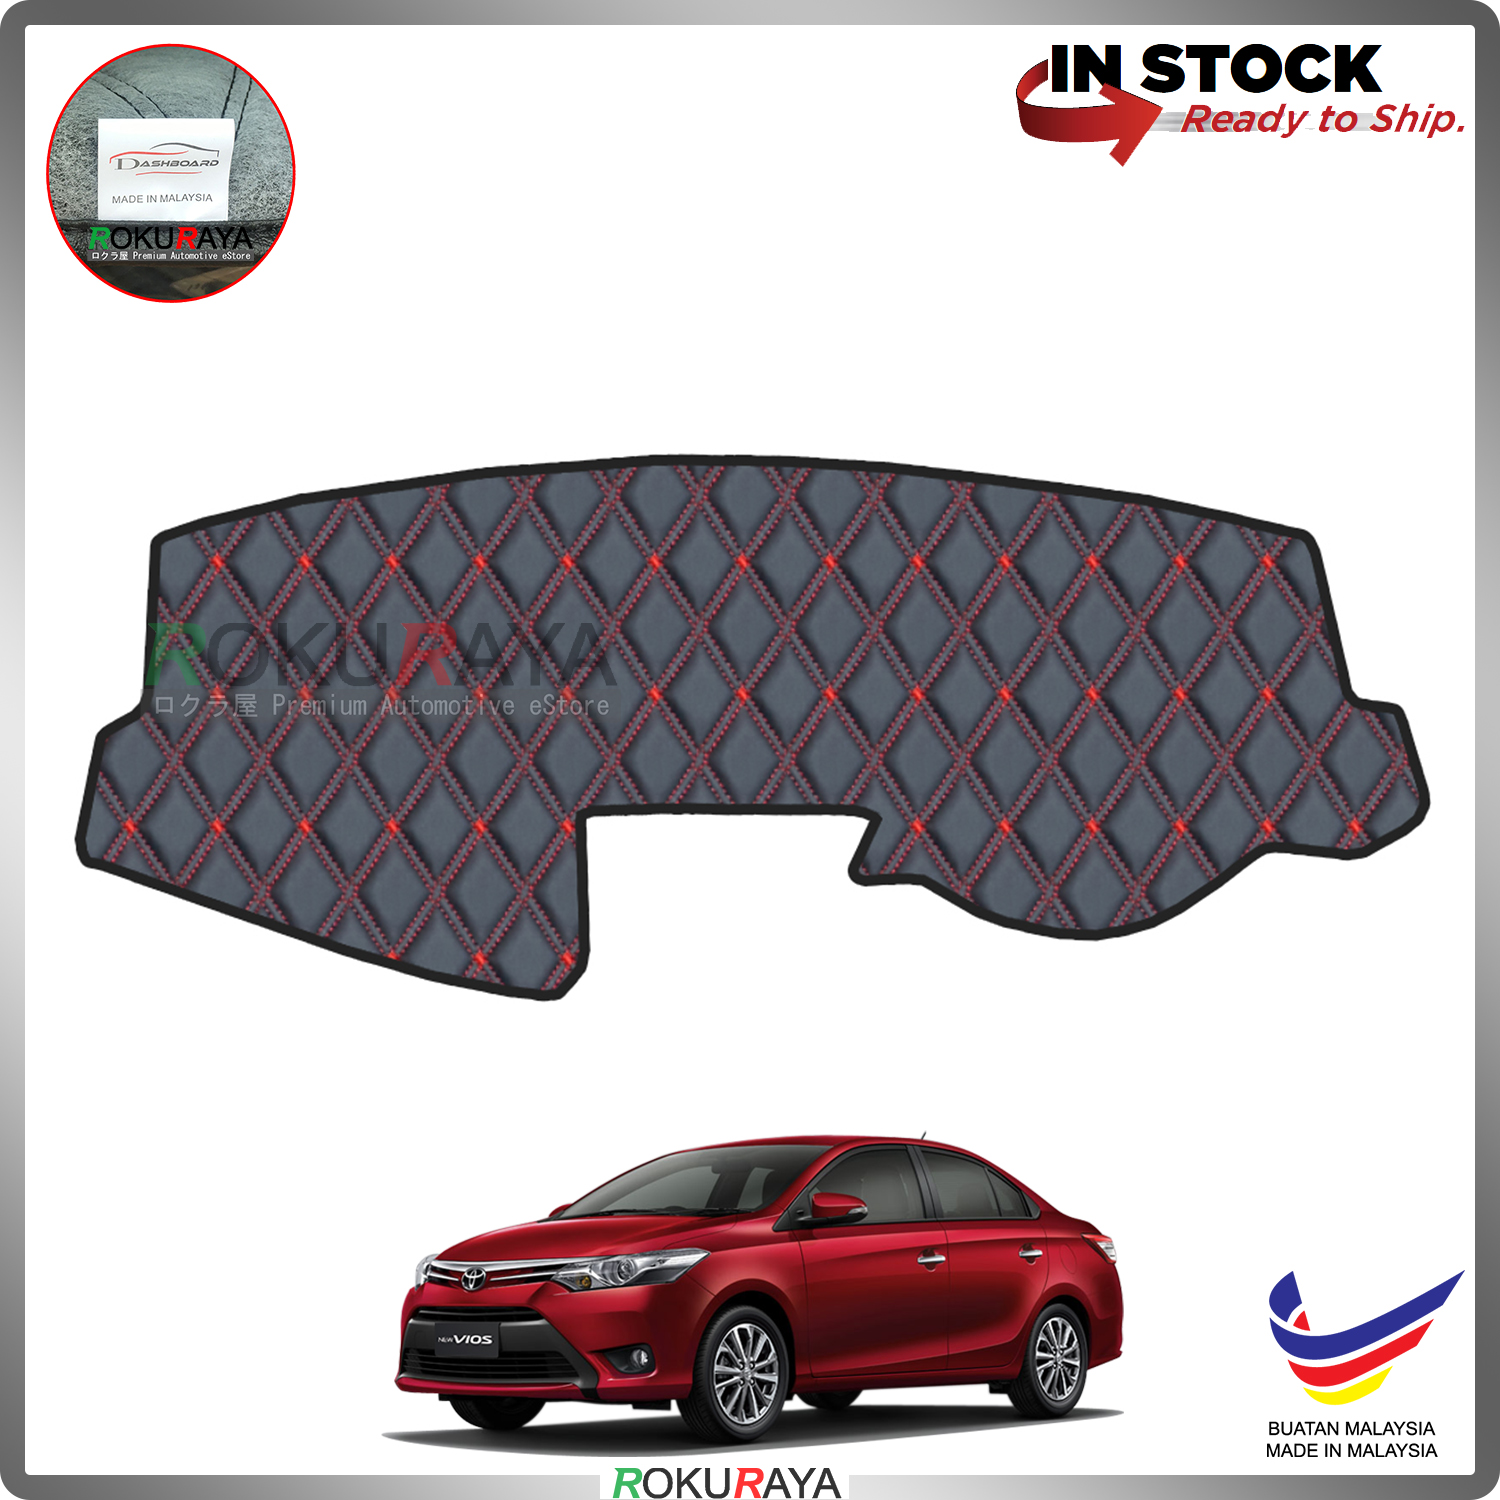 Toyota Vios XP150 (3rd Gen) 2013-2018 RR Malaysia Custom Fit Dashboard Cover (RED LINE)